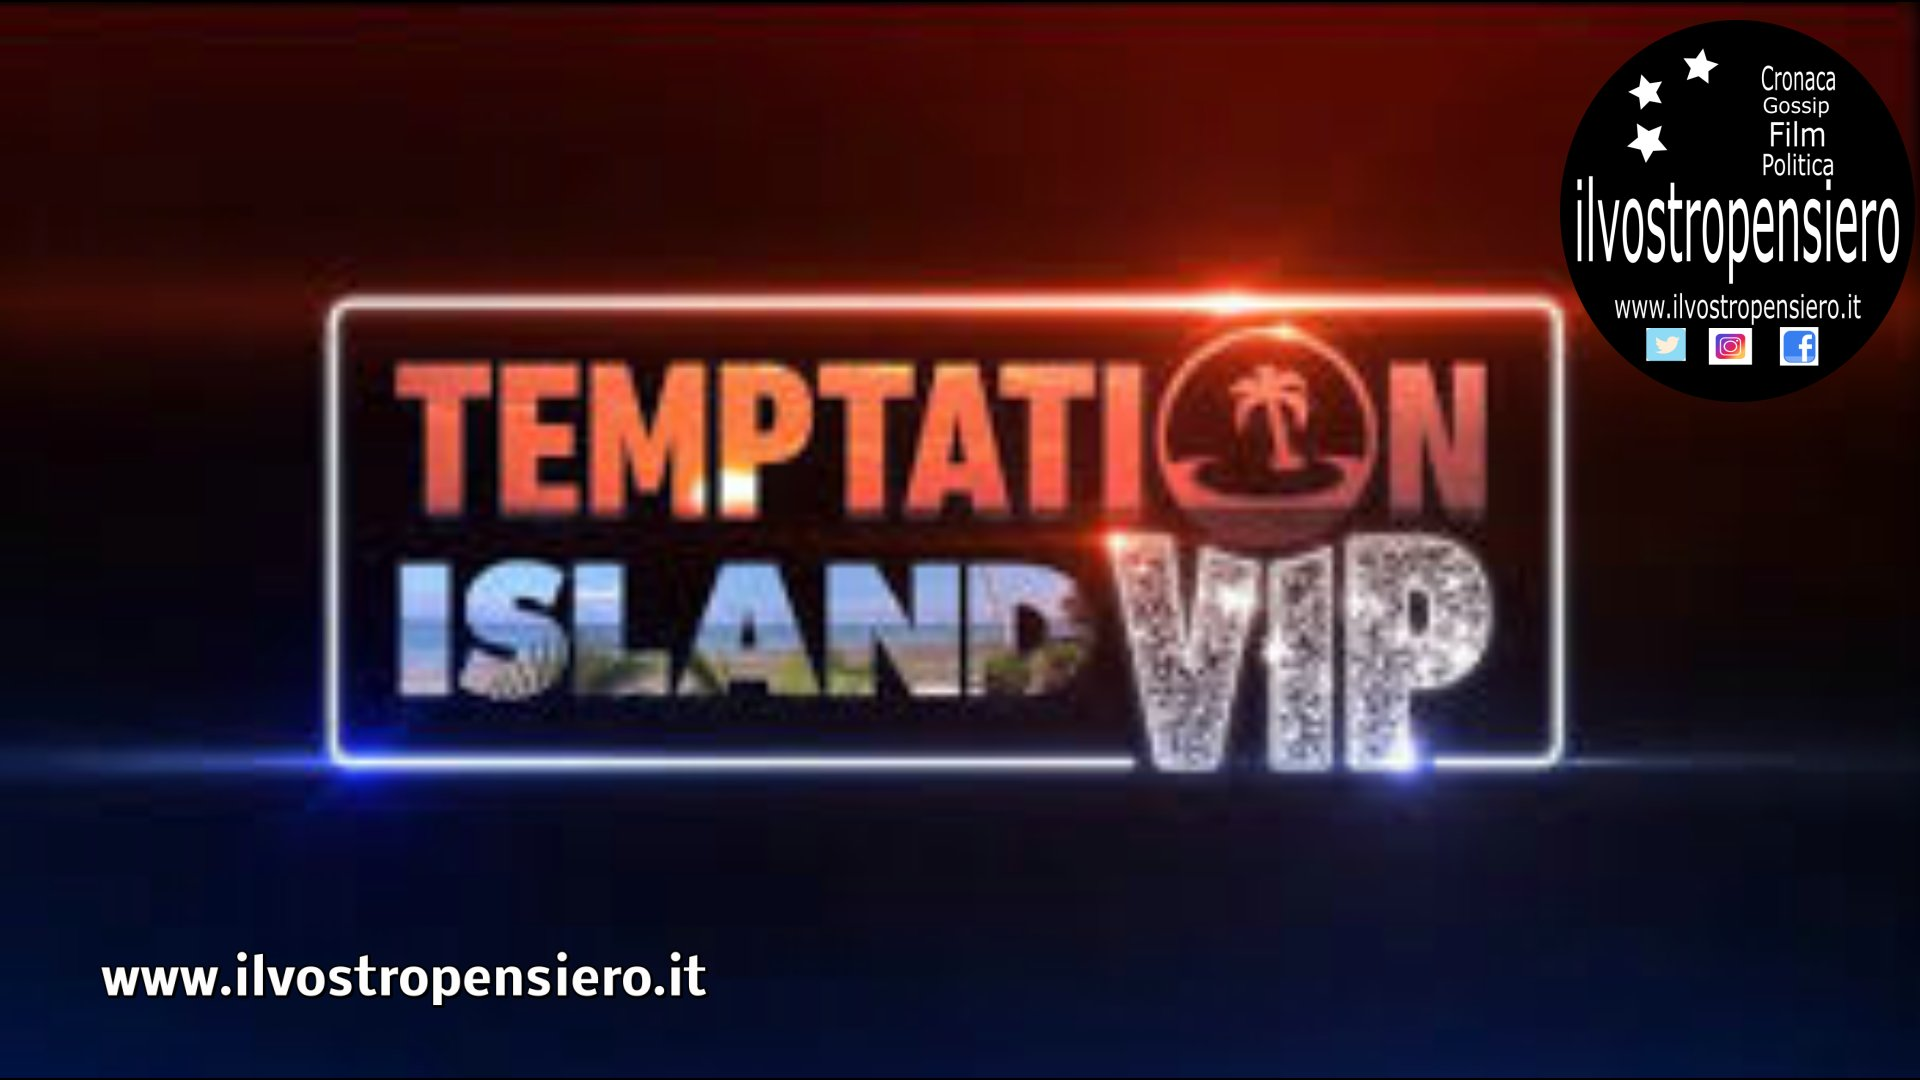 Temptation island vip: il single Alessandro dice un segreto ad Serena Enardu (guarda il video)